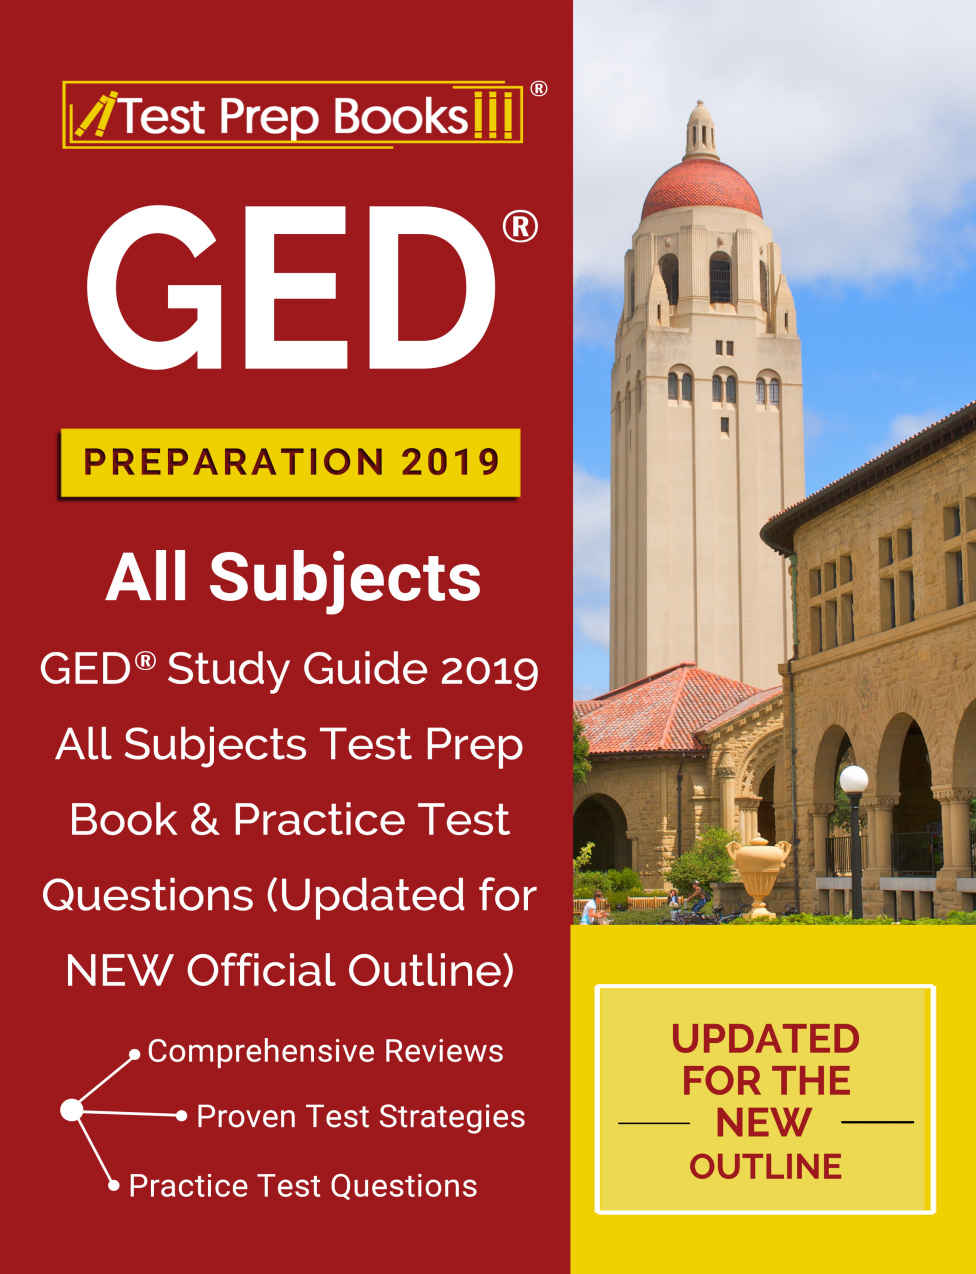 ged1a-GED-Preparation-2019-All-Subjects.jpg